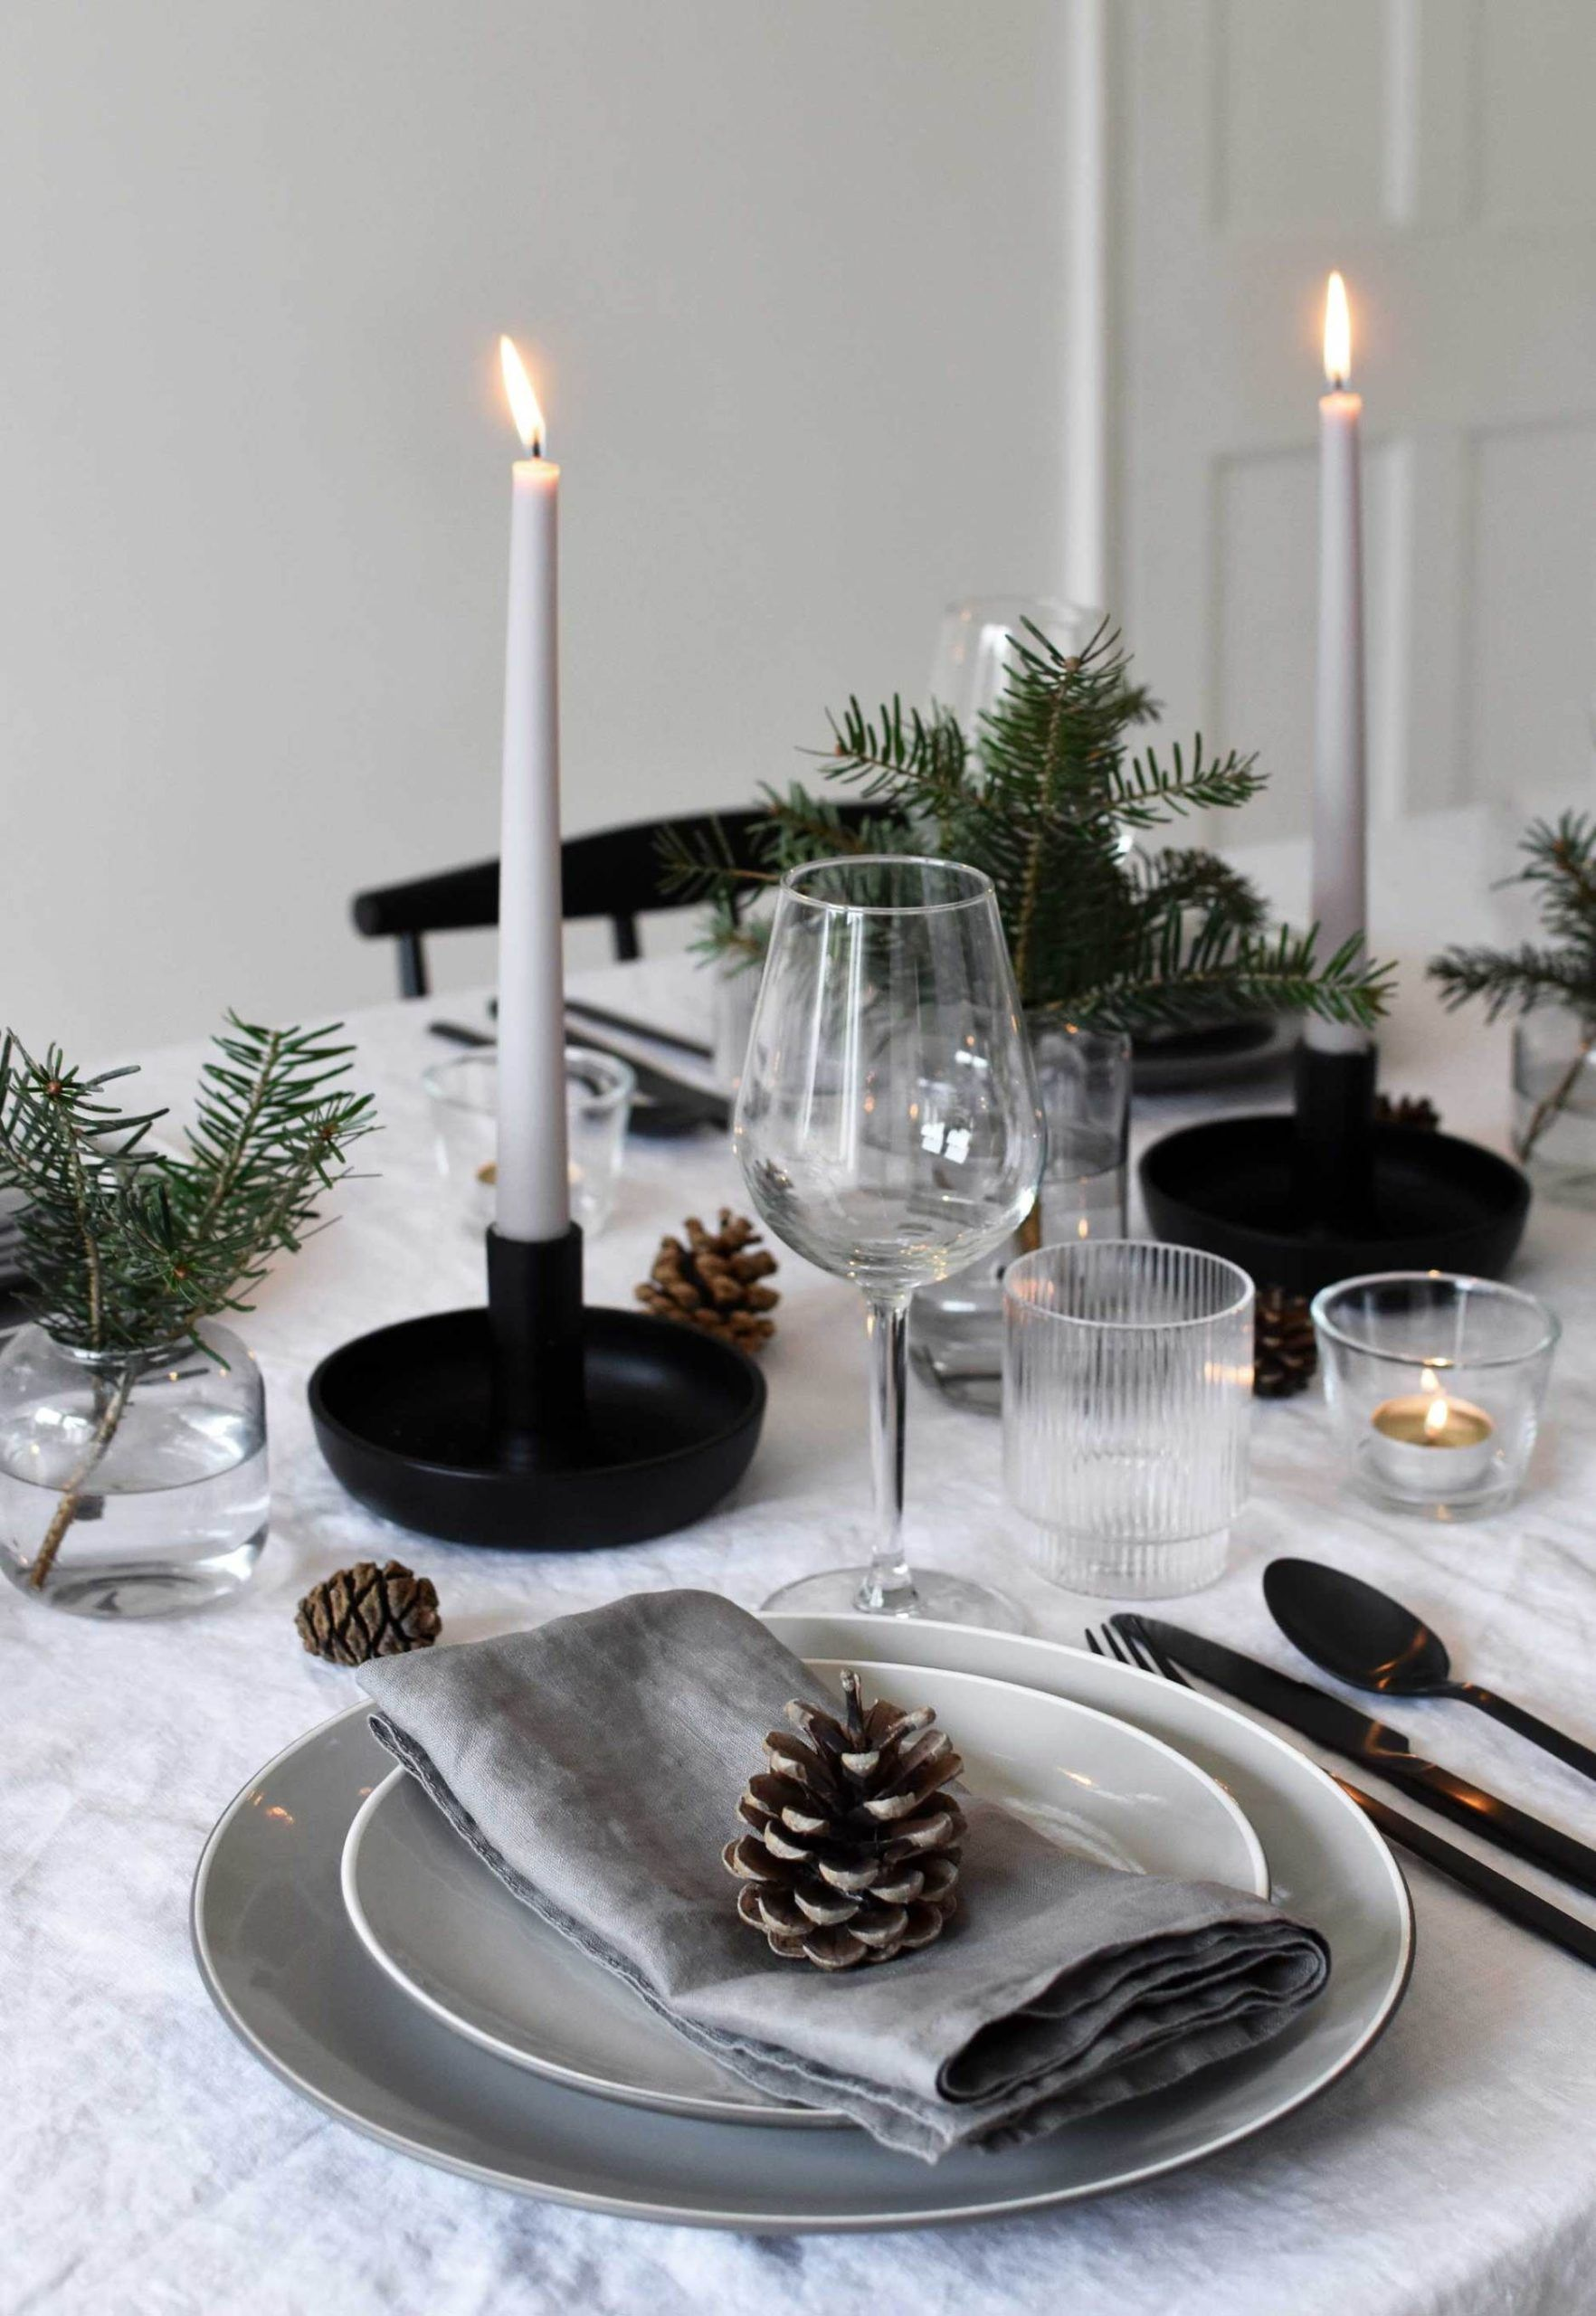 Minimalist Christmas table styling with fir candles  pine cones Minimalist Christmas table styling with fir candles  pine cones